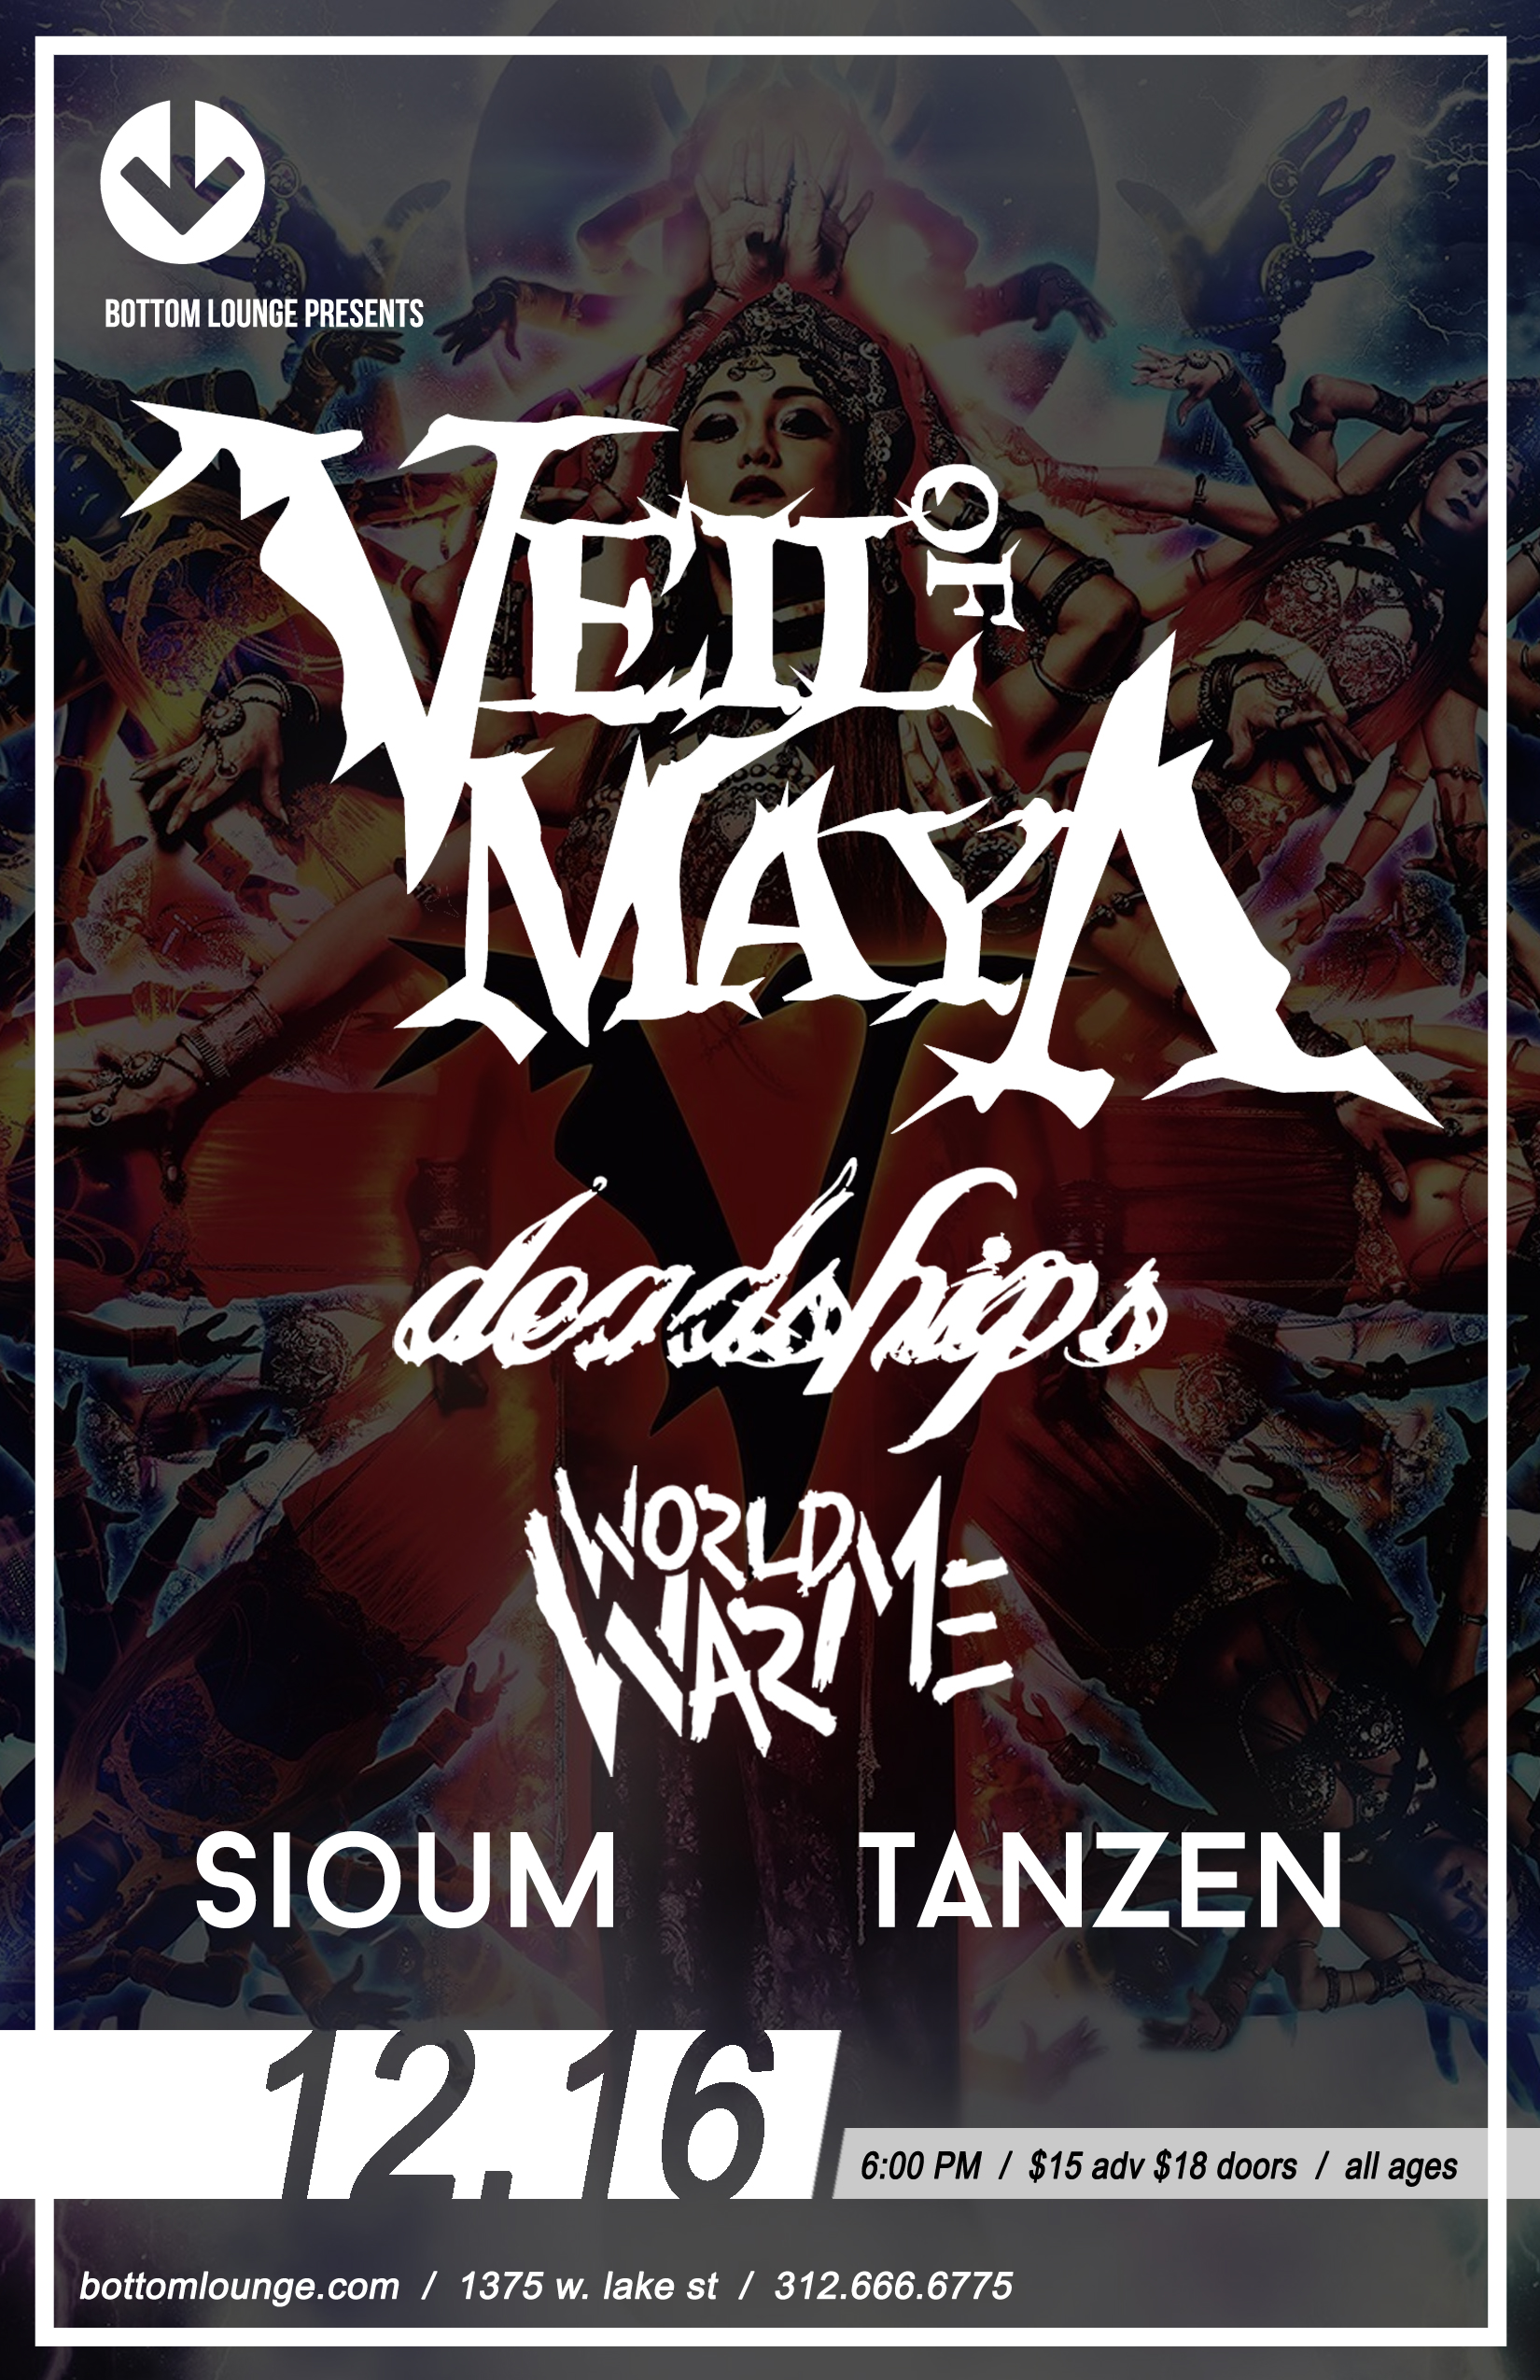 VEIL OF MAYA * DEADSHIPS * WORLD WAR ME * SIOUM * TANZEN